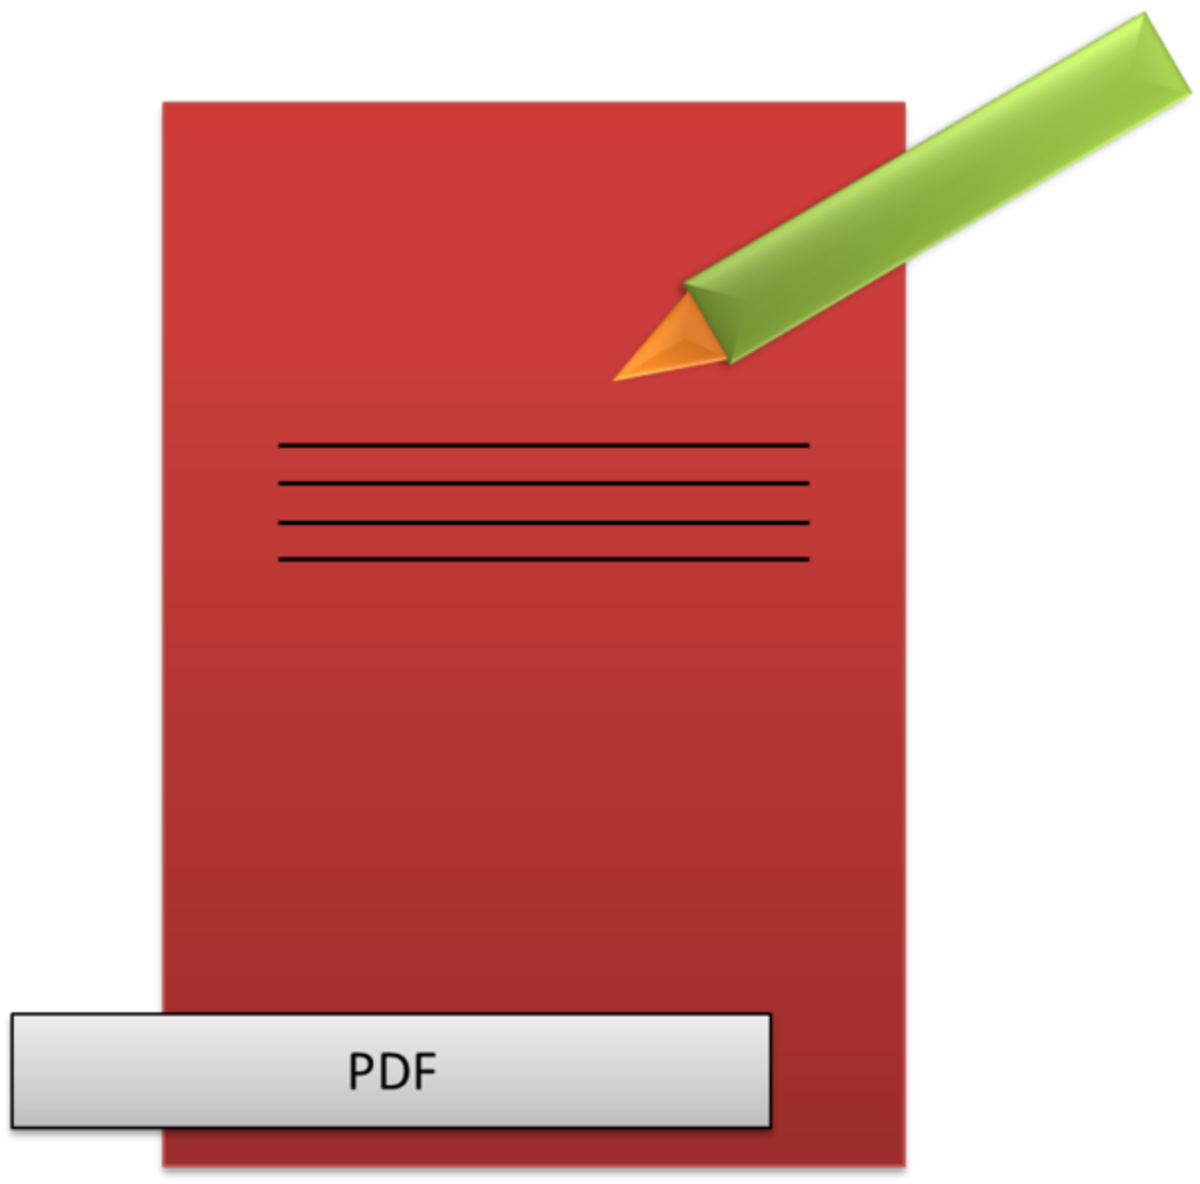 Create PDF using iOS UIKit